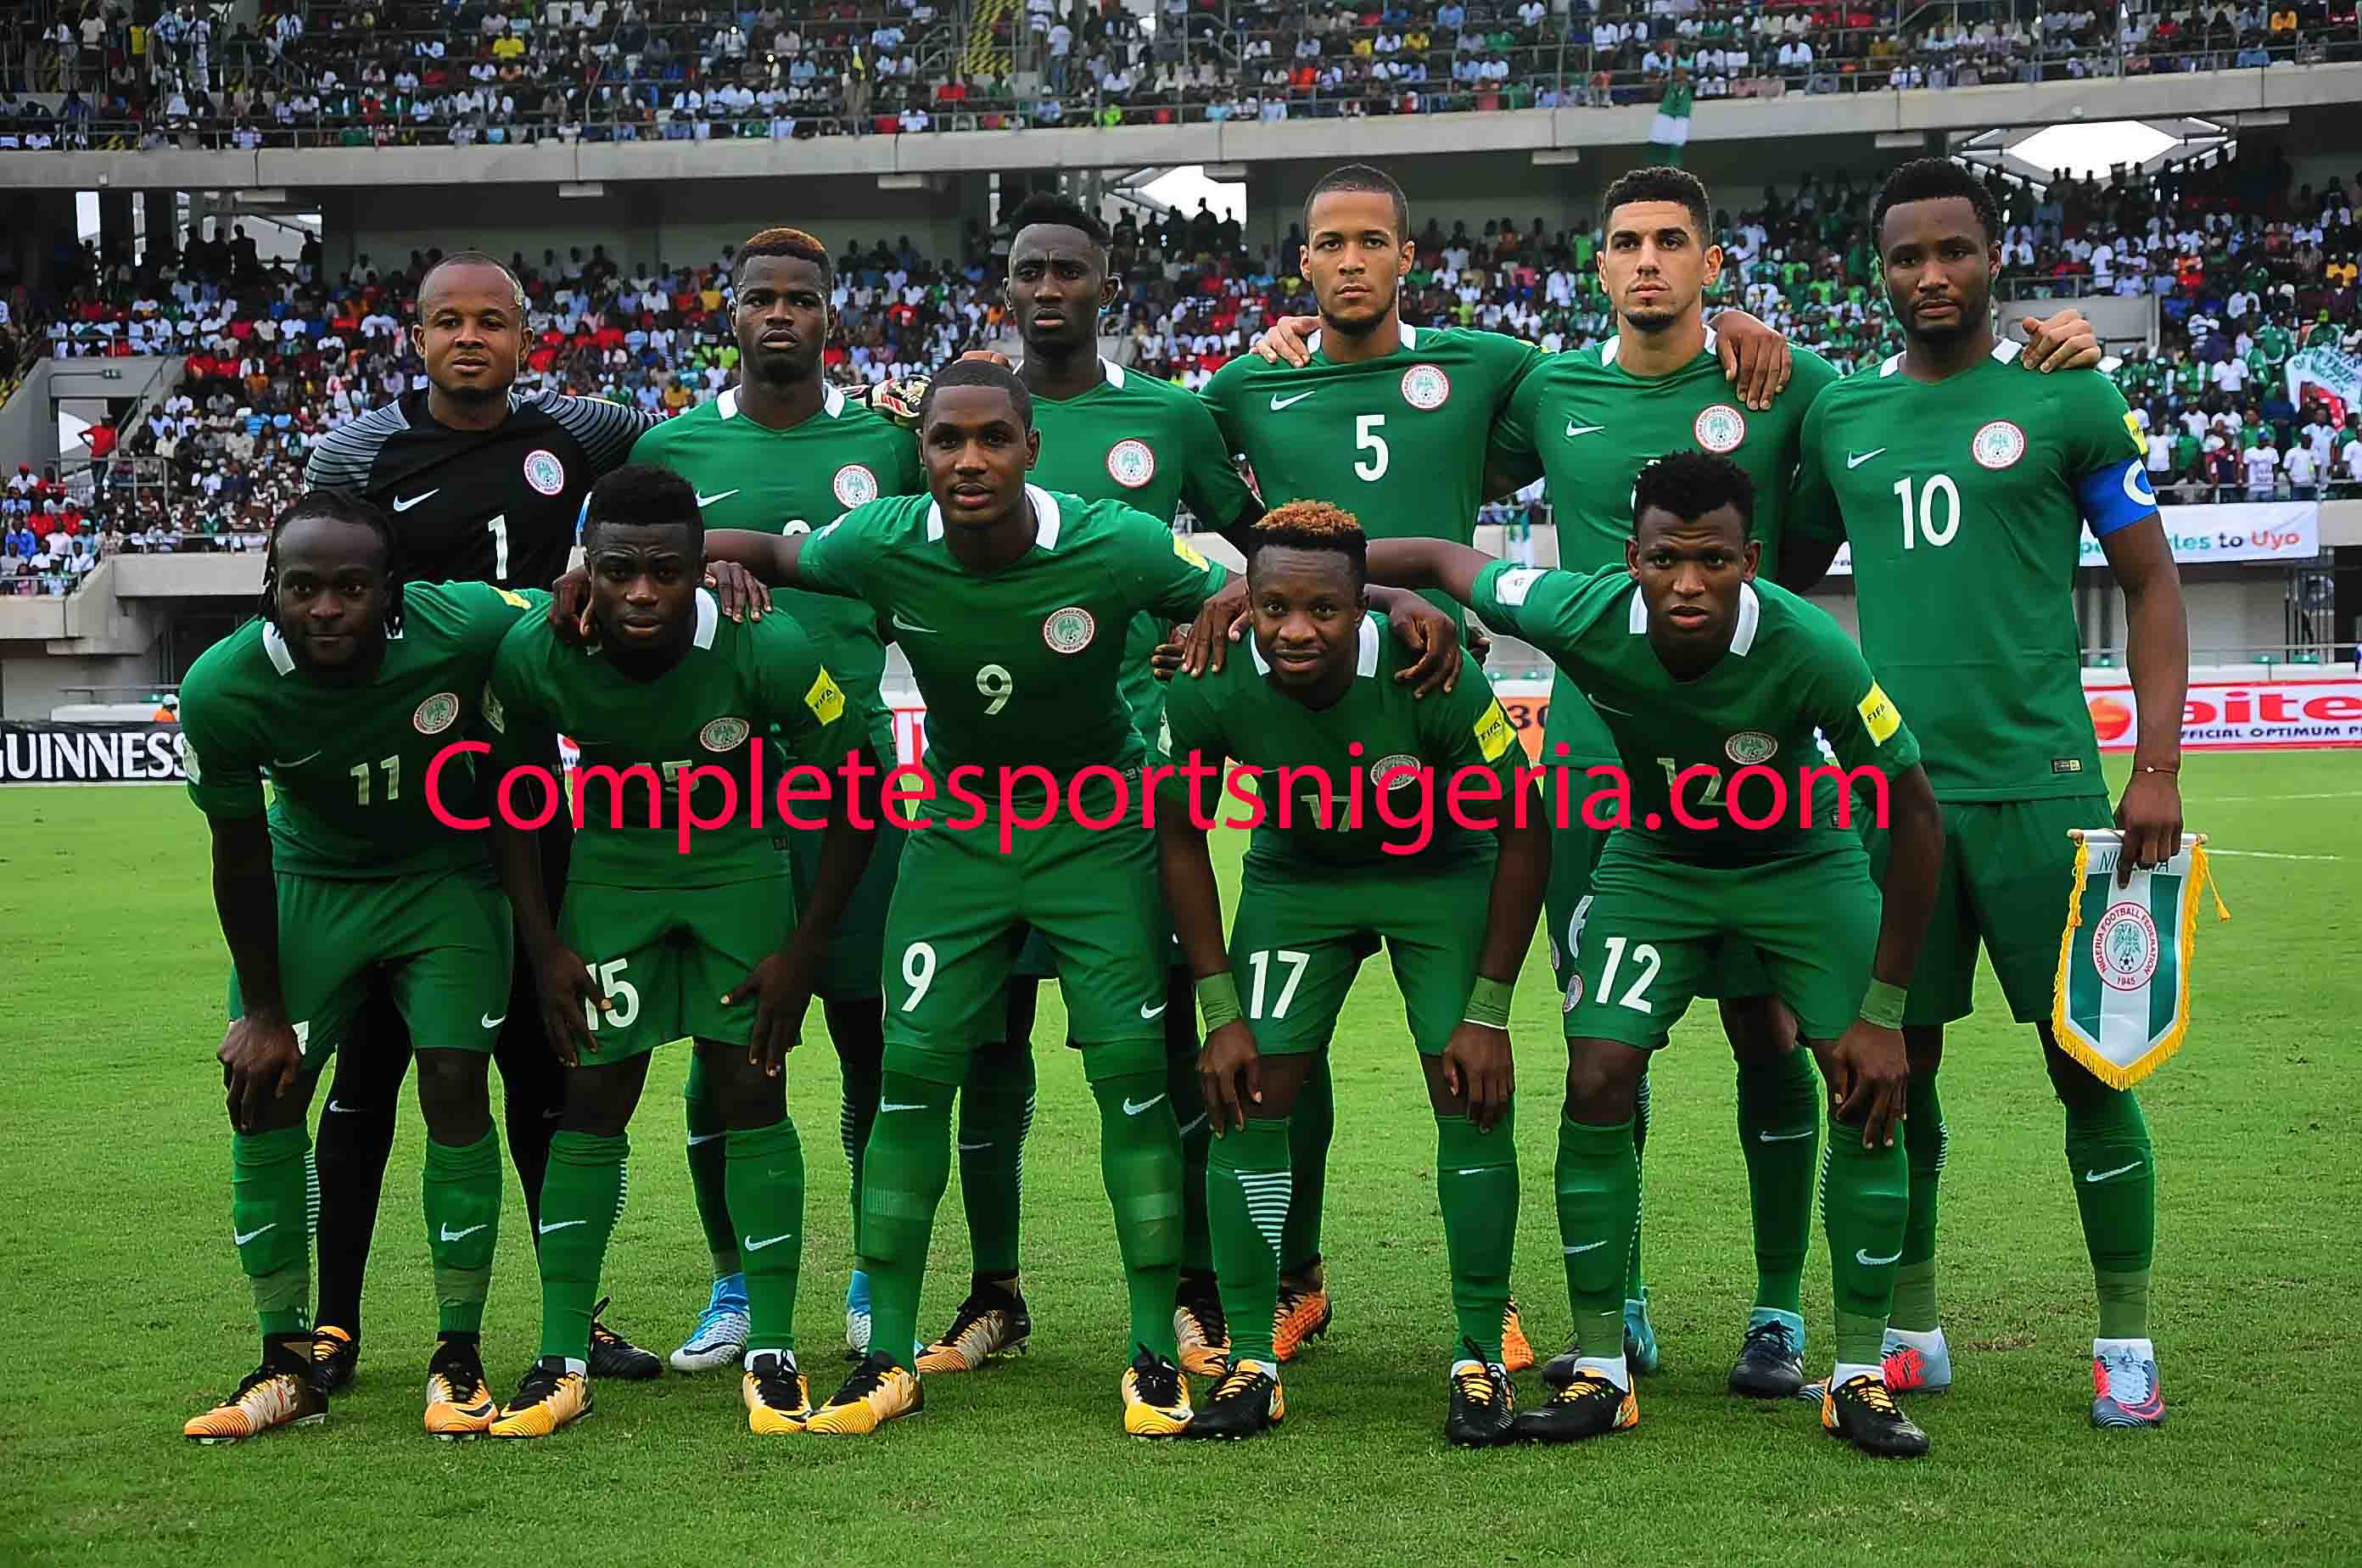 Super Eagles To Train At 7pm Tonight, Stay At Hilton Yaounde